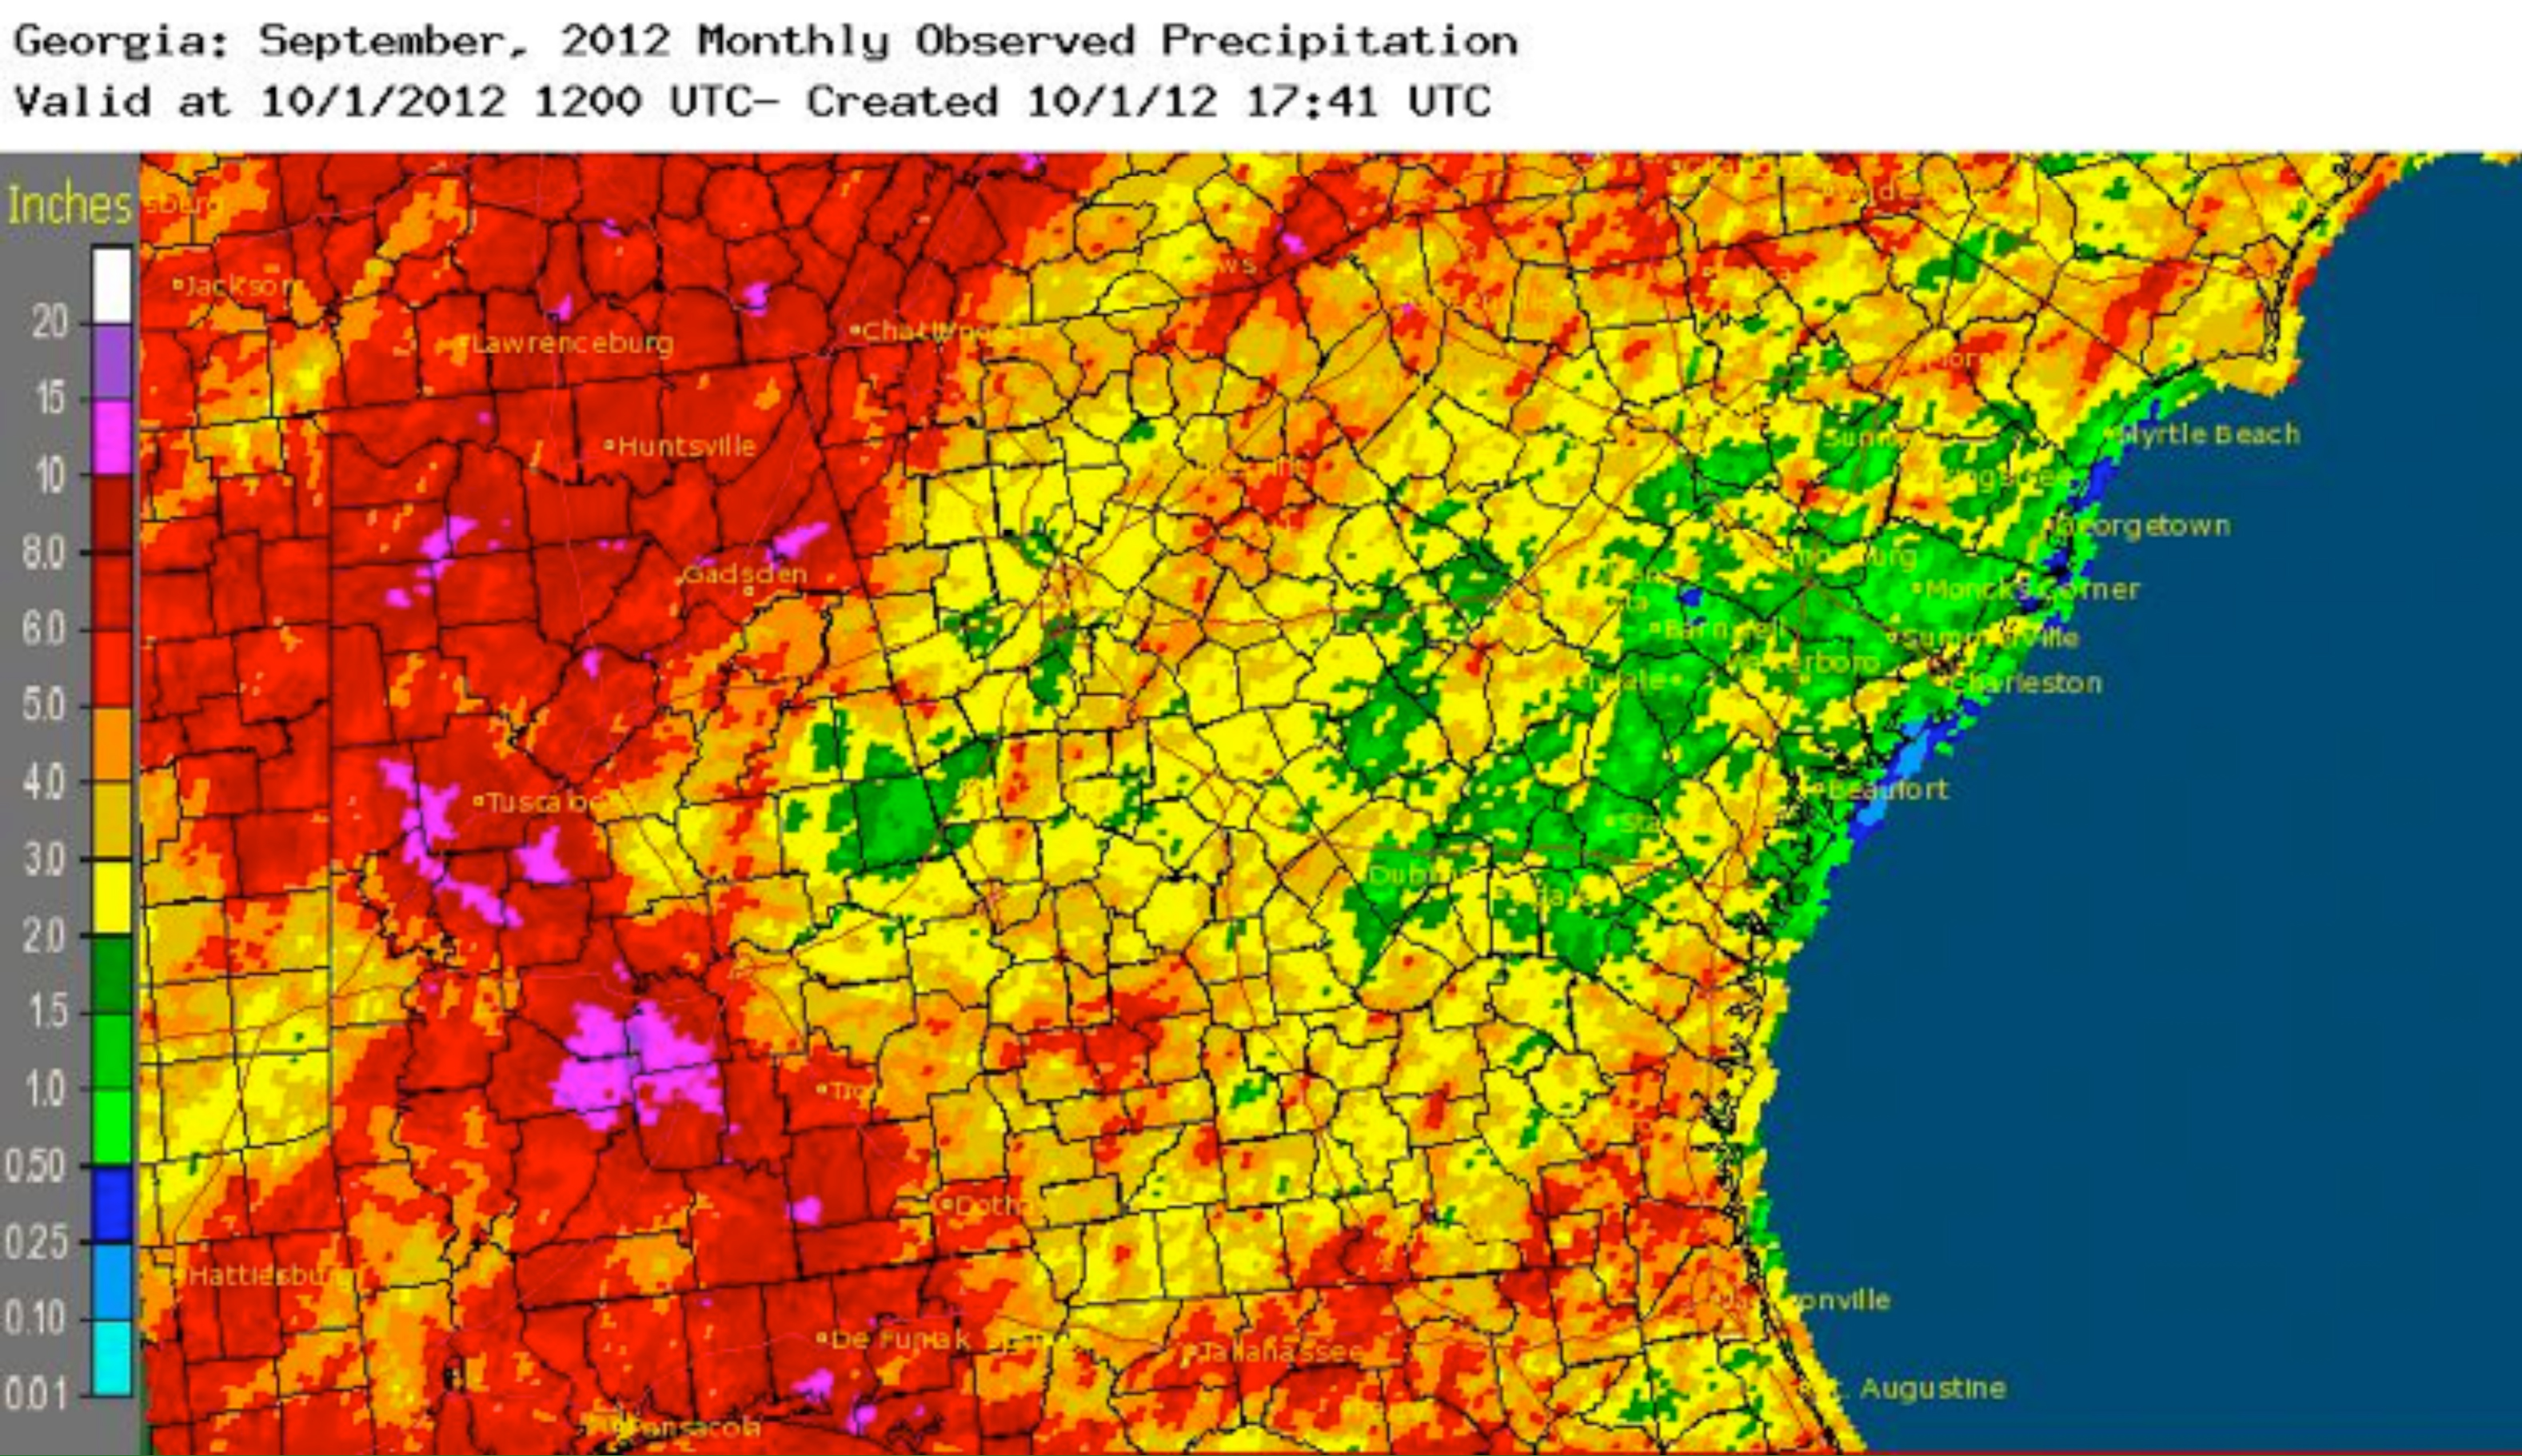 Georgia saw a slightly drier than average September, but the state did see plenty of rain at the beginning of the month when the remnants of Hurricane Isaac blew through.